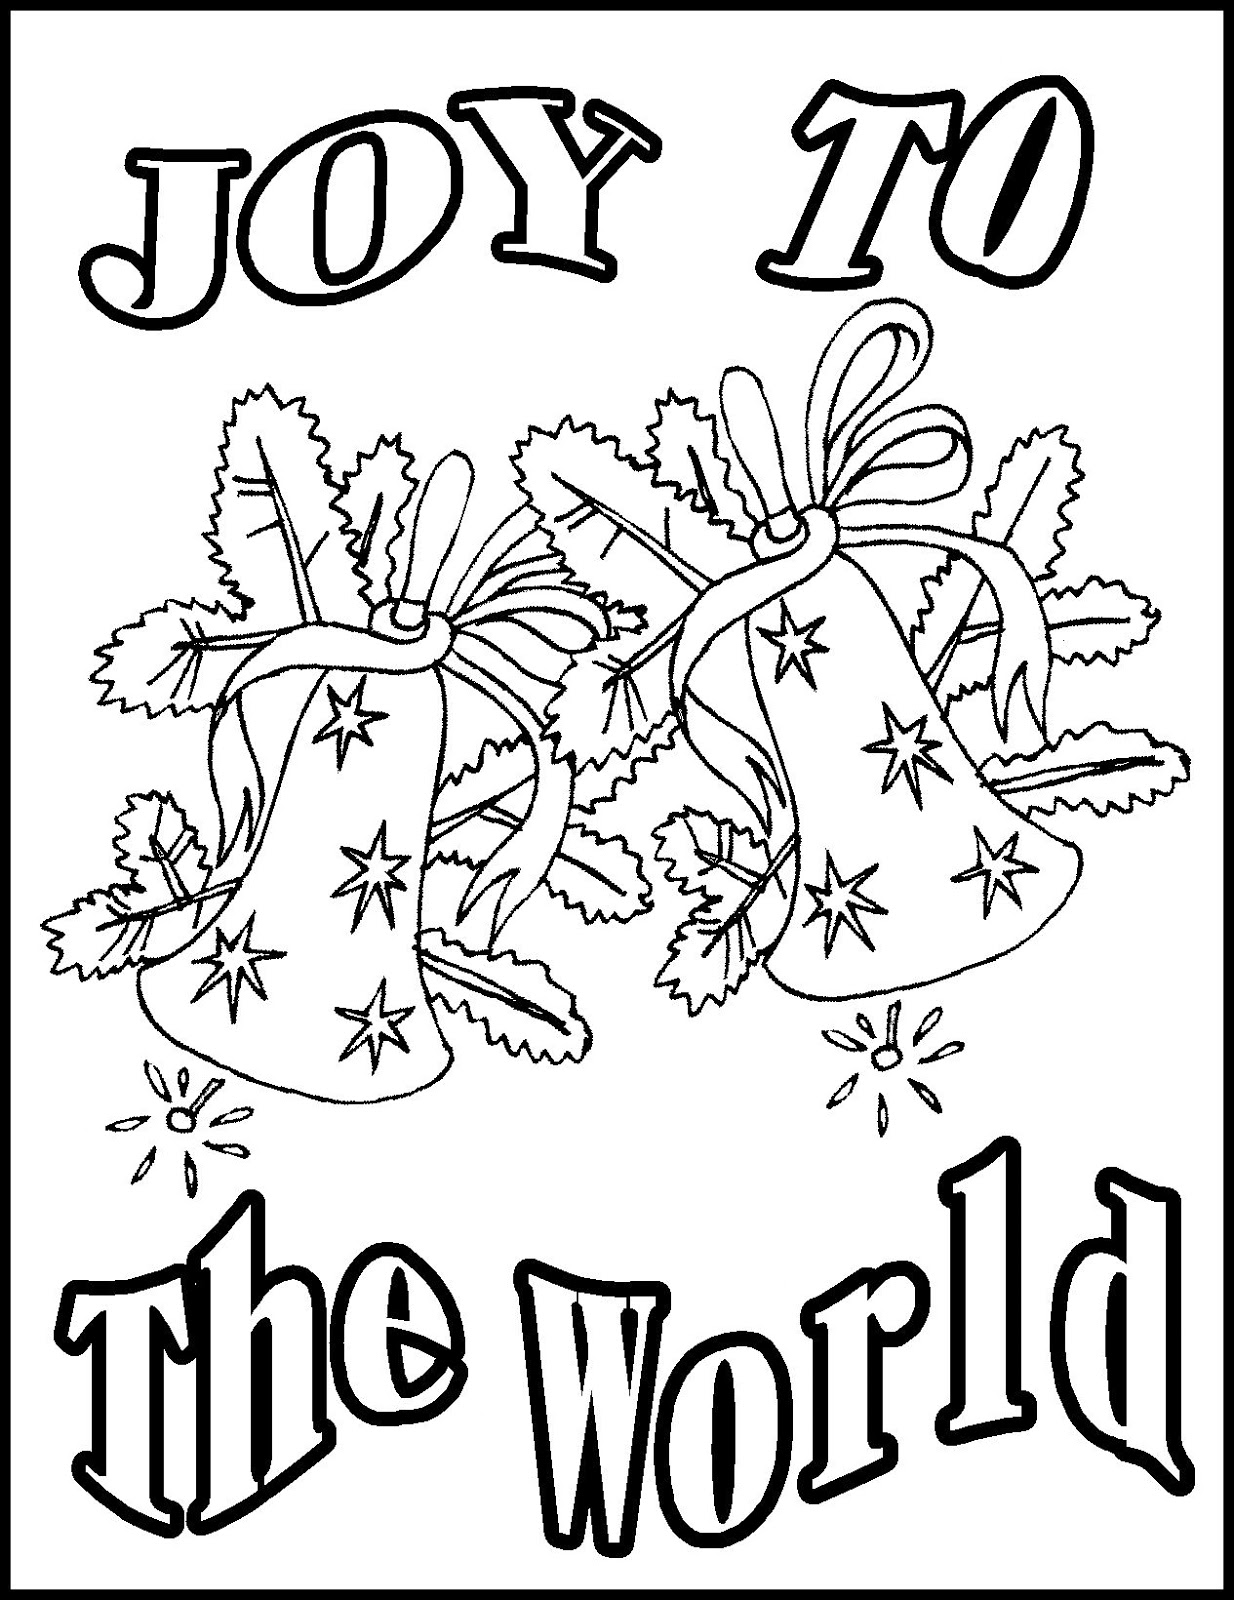 free christian coloring sheets free christian coloring pages for adults roundup coloring sheets christian free